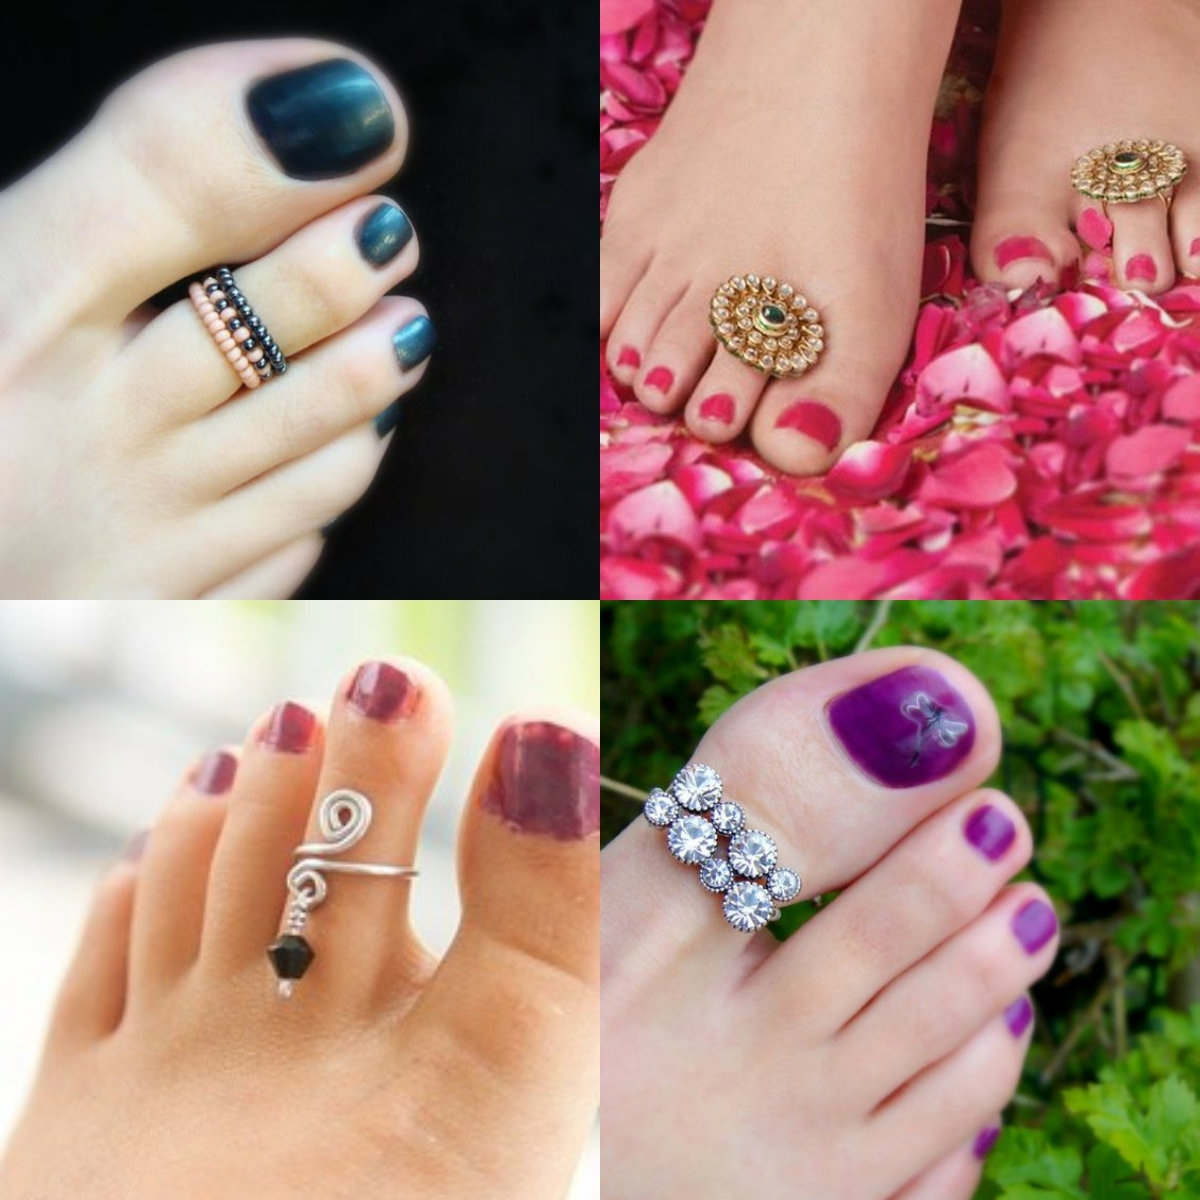 Affordable & Comfortable Toe Rings For Women | Trends4us Inside Most Recent Toe Rings For Women (View 11 of 15)